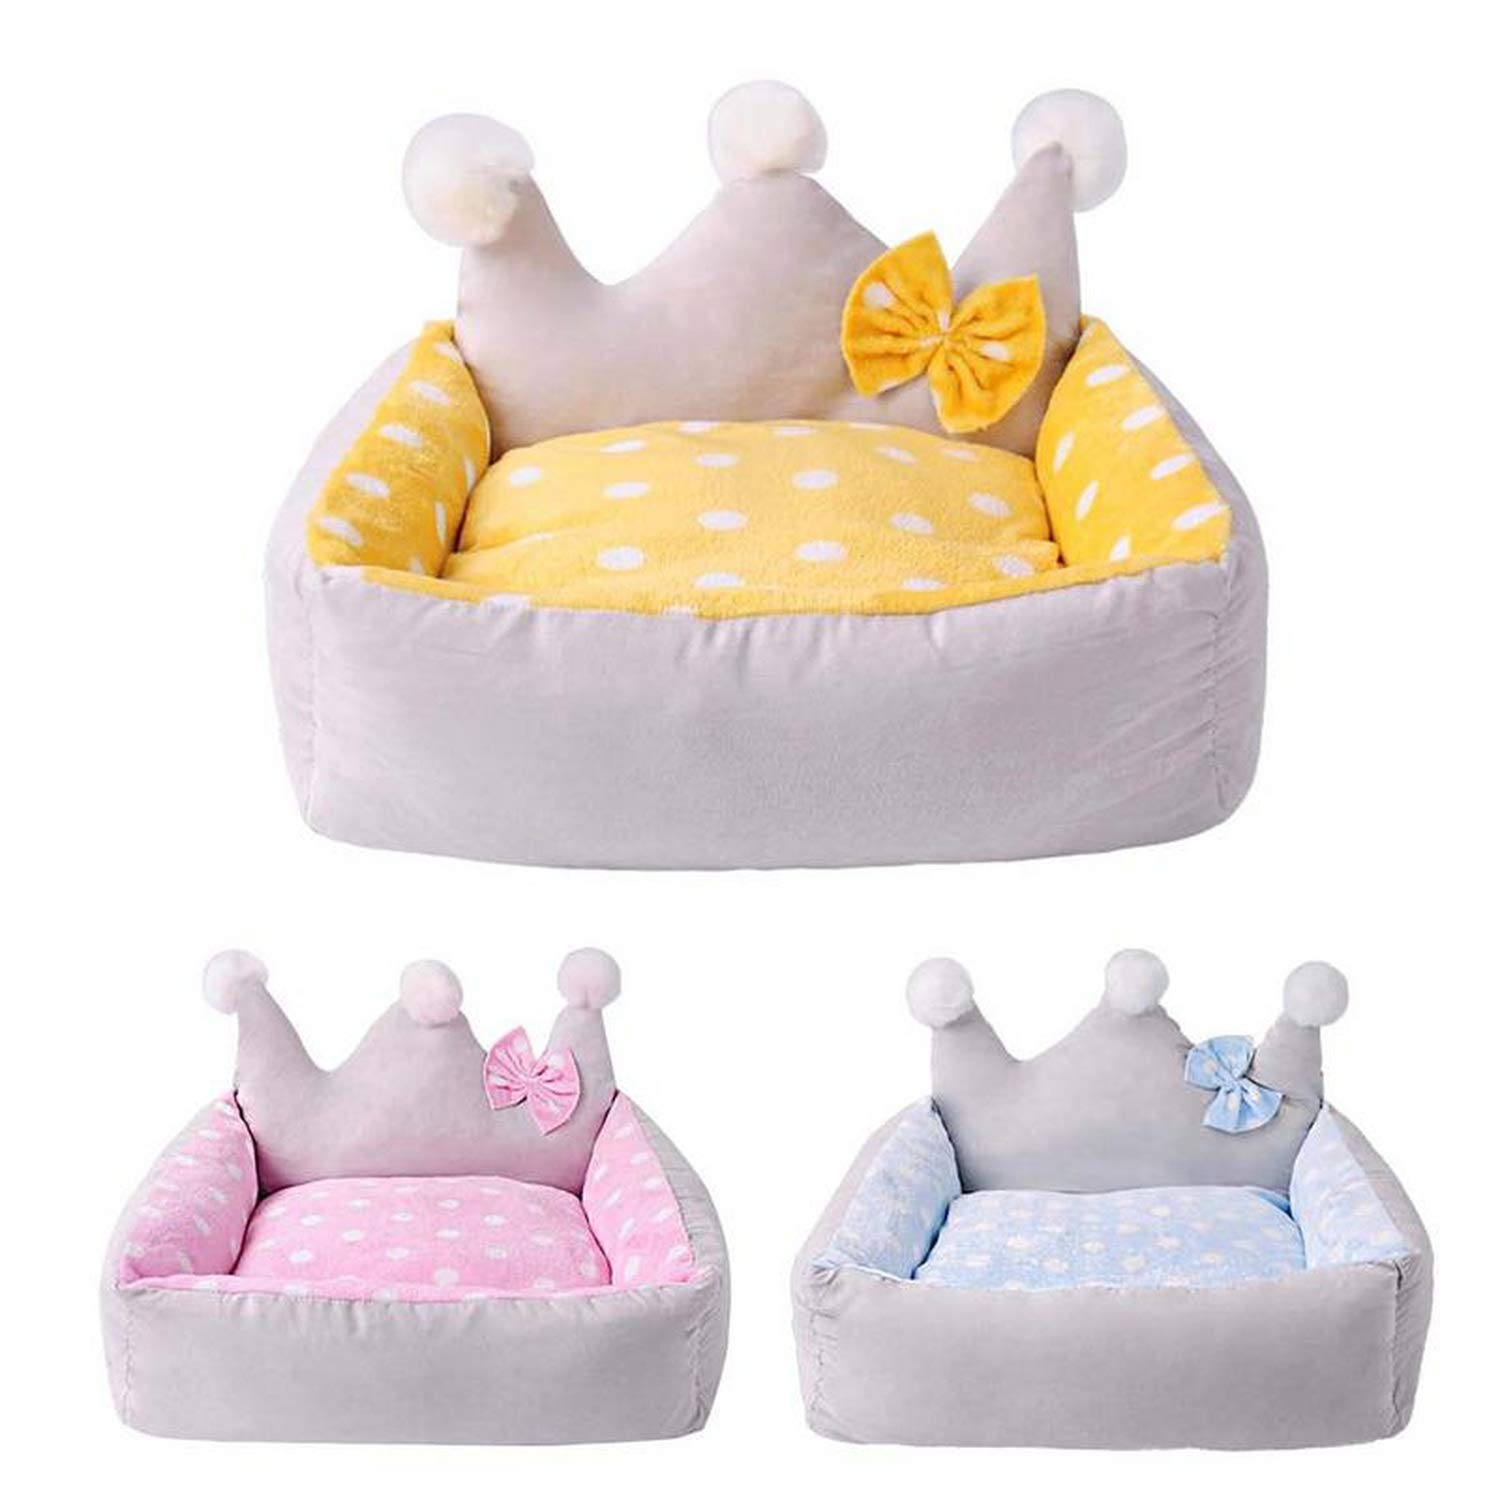 Amazon.com : Colorful-World Dog Bed Crown Shape with Bow ...